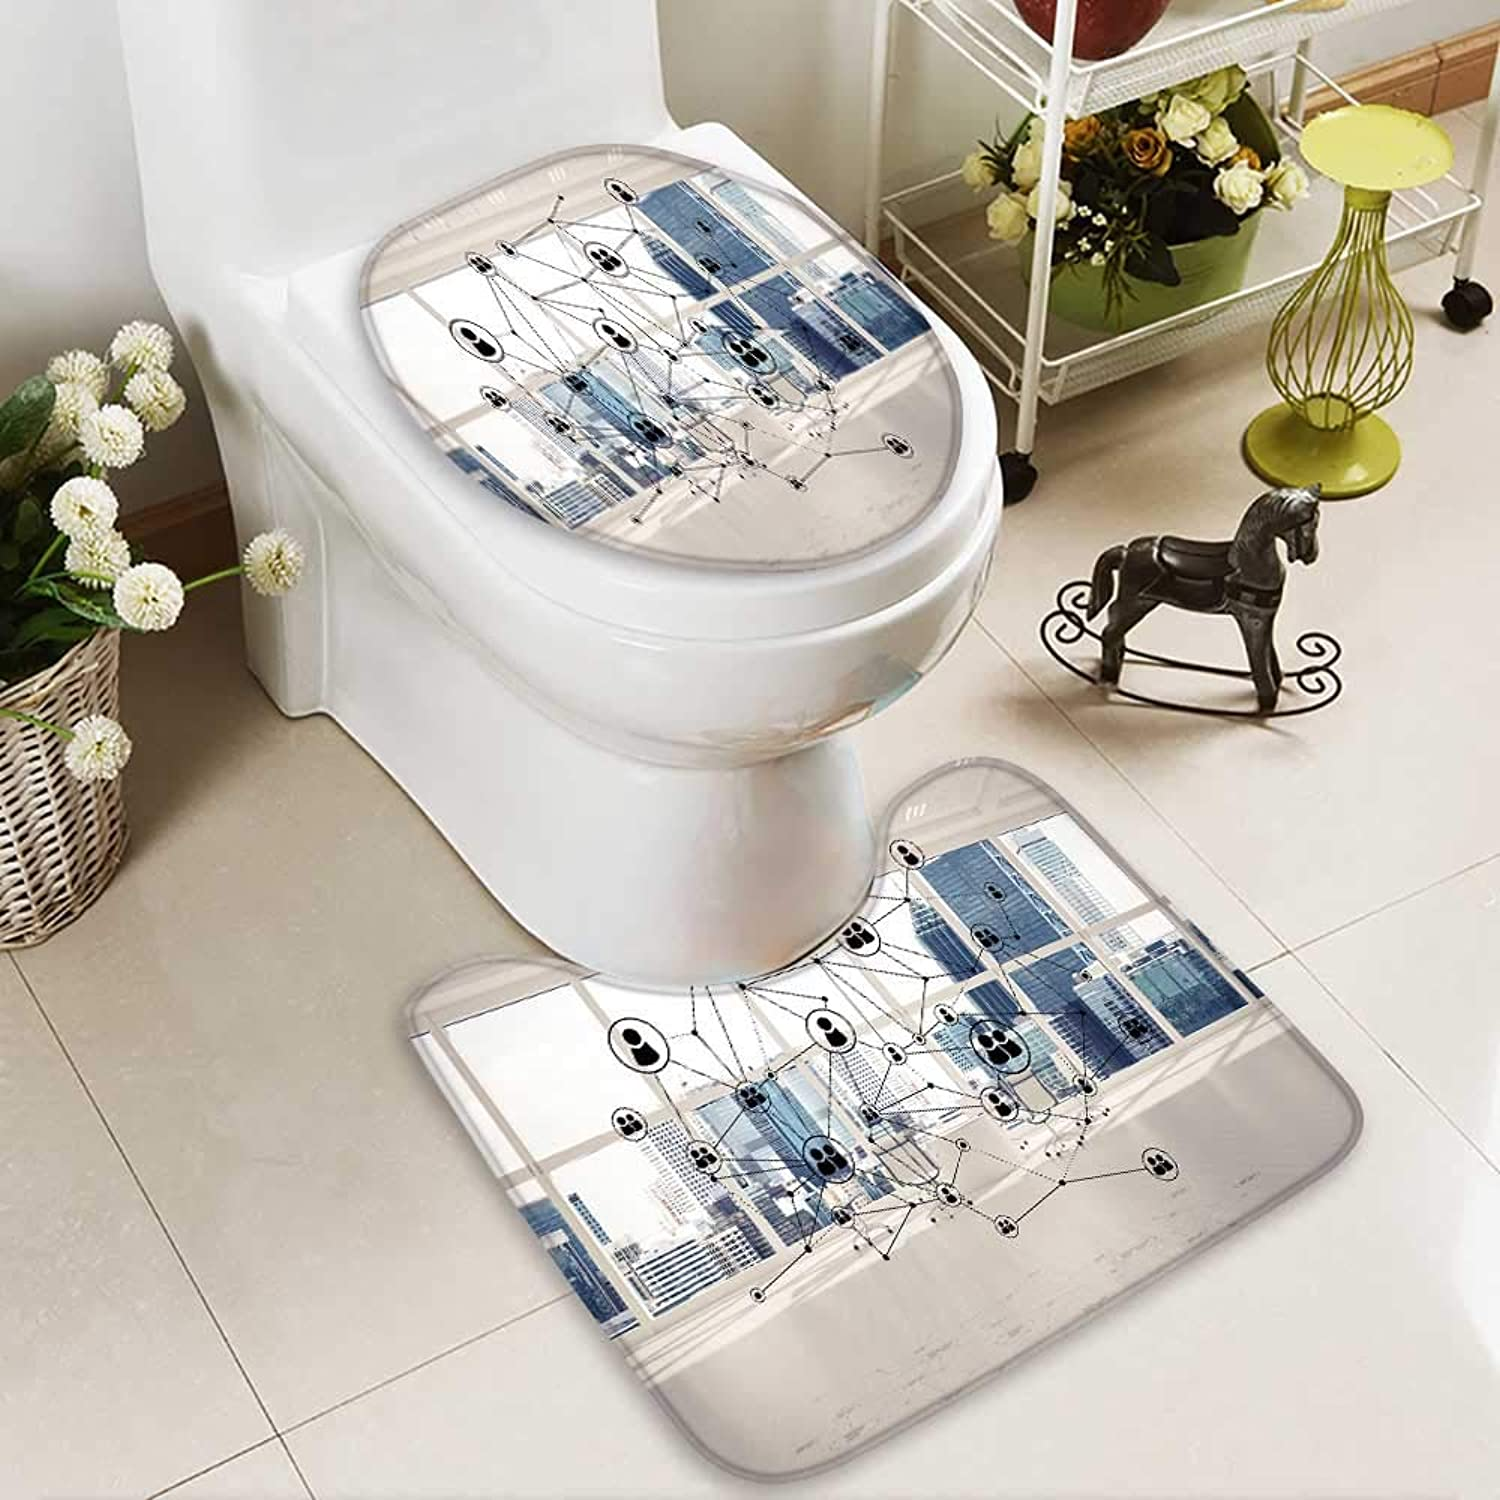 Analisahome Cushion Non-Slip Toilet Mat Networking Wireless Connection as Concept Effective Mode Soft Non-Slip Water